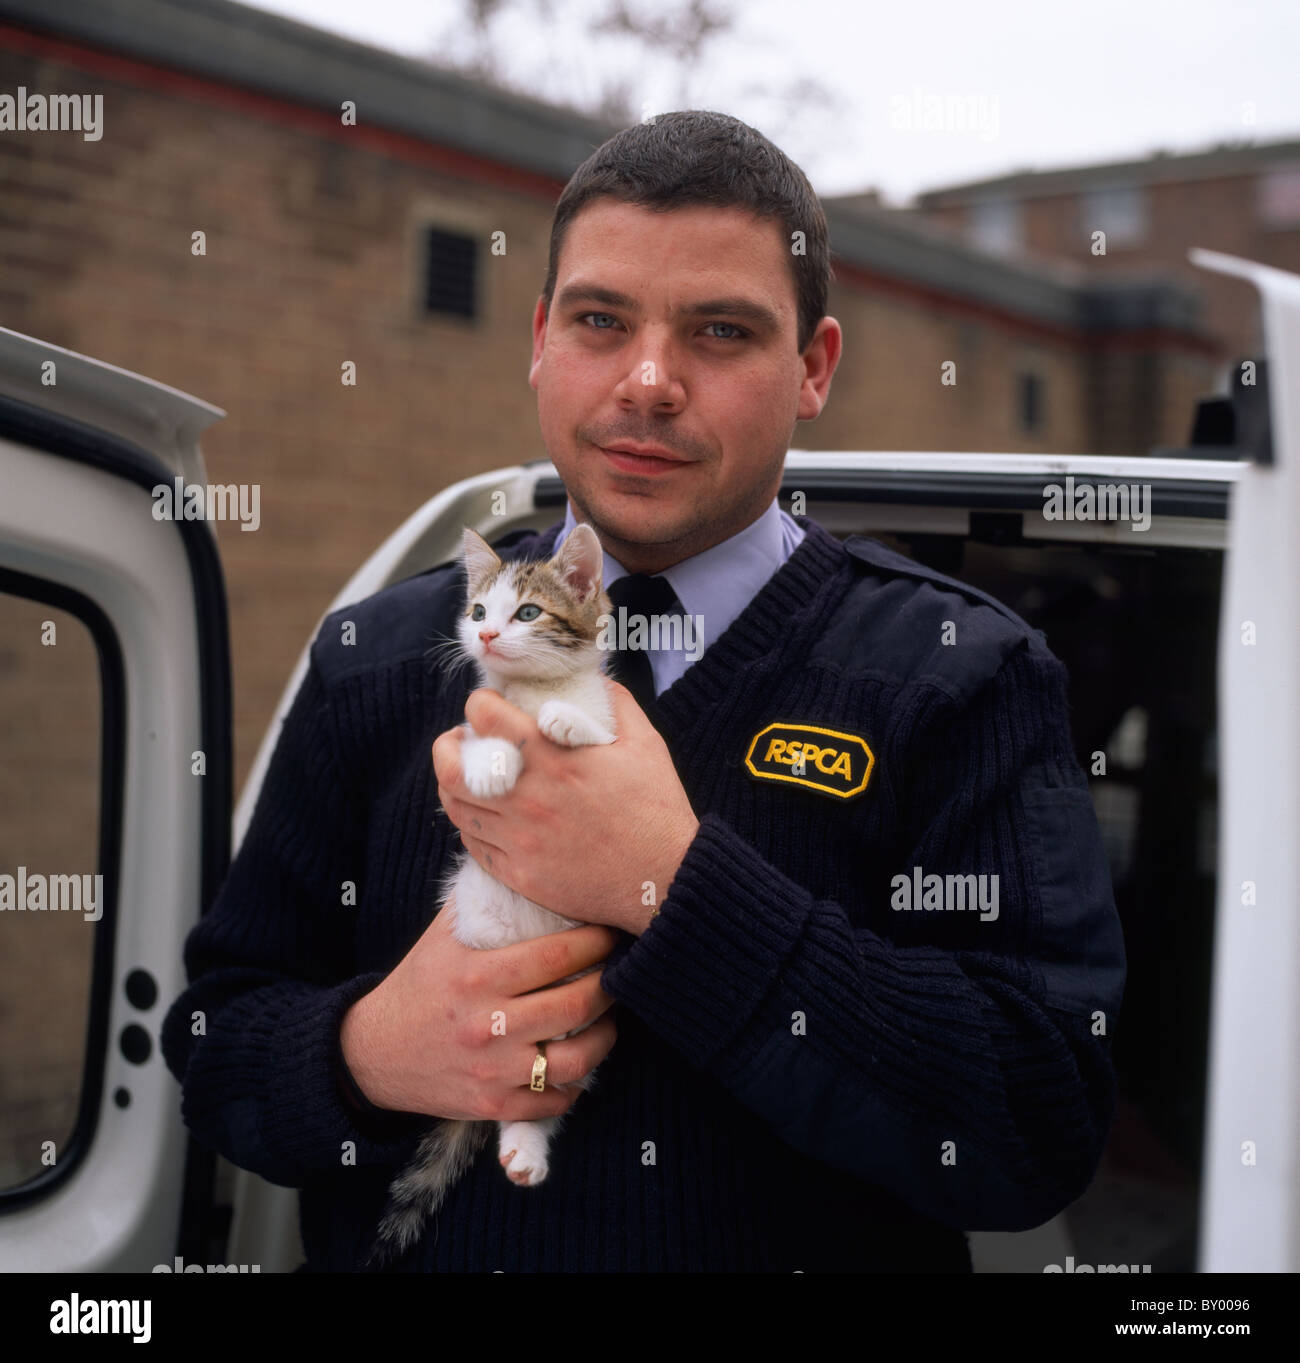 RSPCA in England in Great Britain in the United Kingdom UK. Animal Work Care Royal Society For the Protection Of - Stock Image